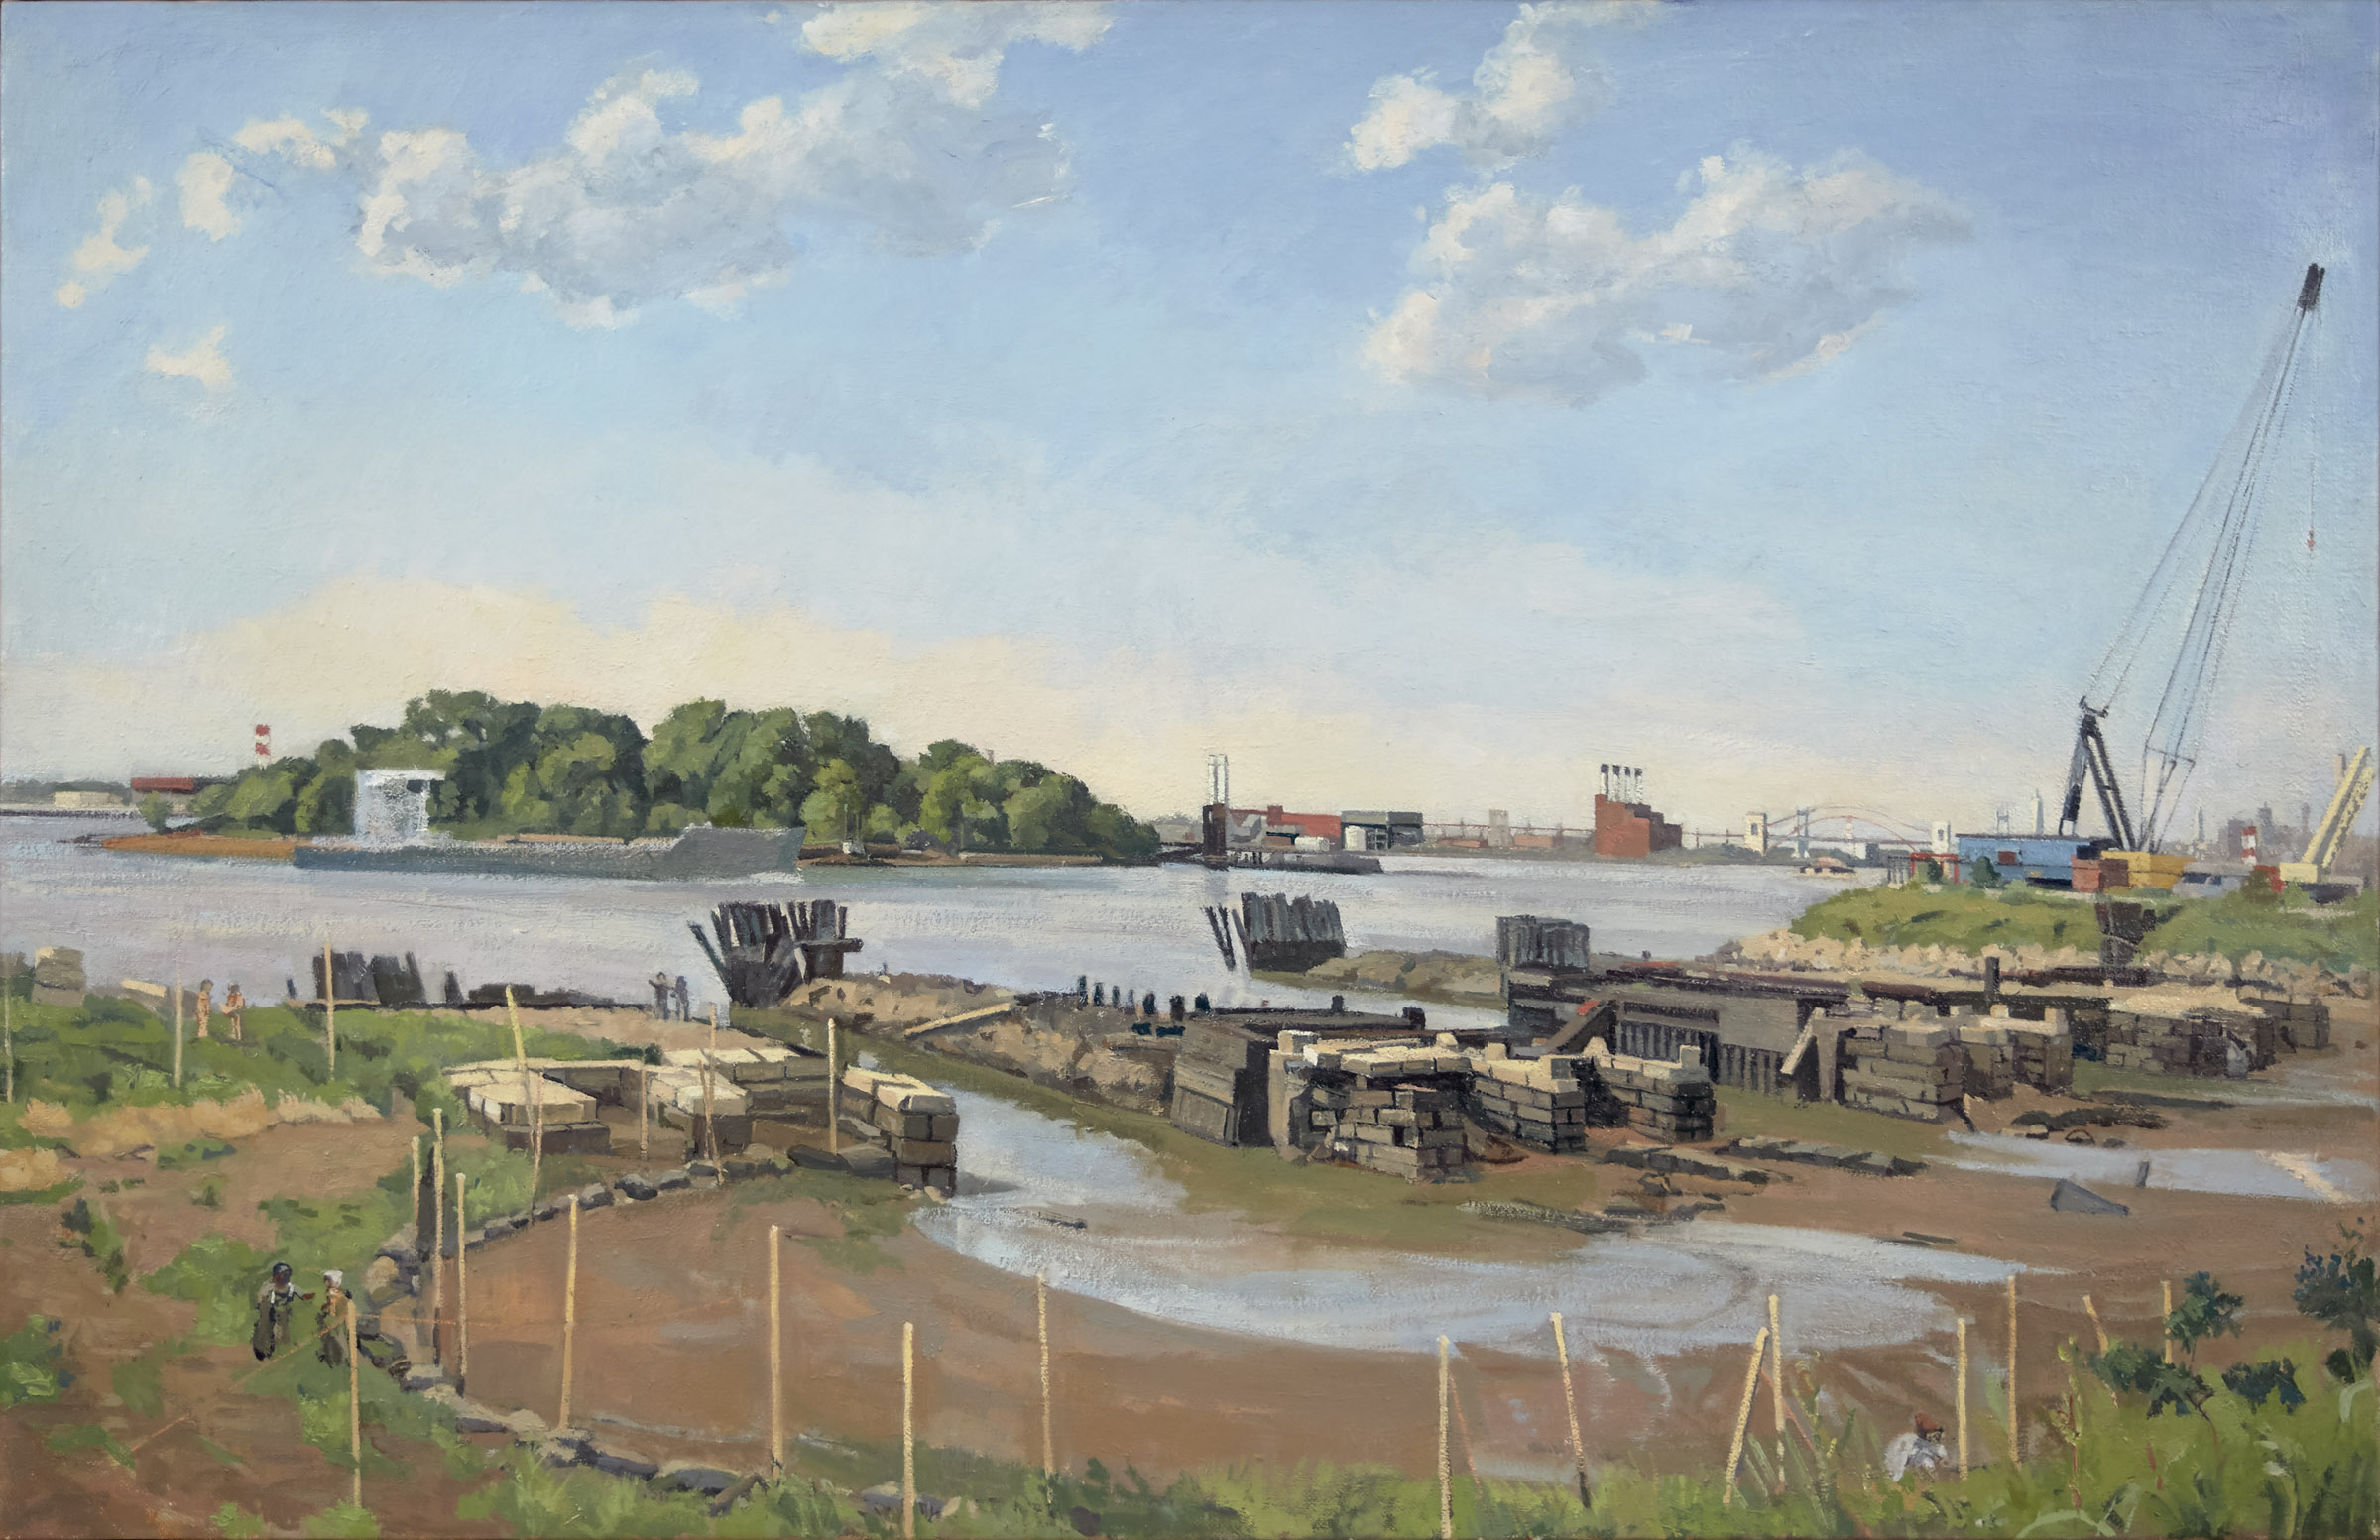 Steve's Train Barge Terminal West | Size 22 x 34 in. | 2015